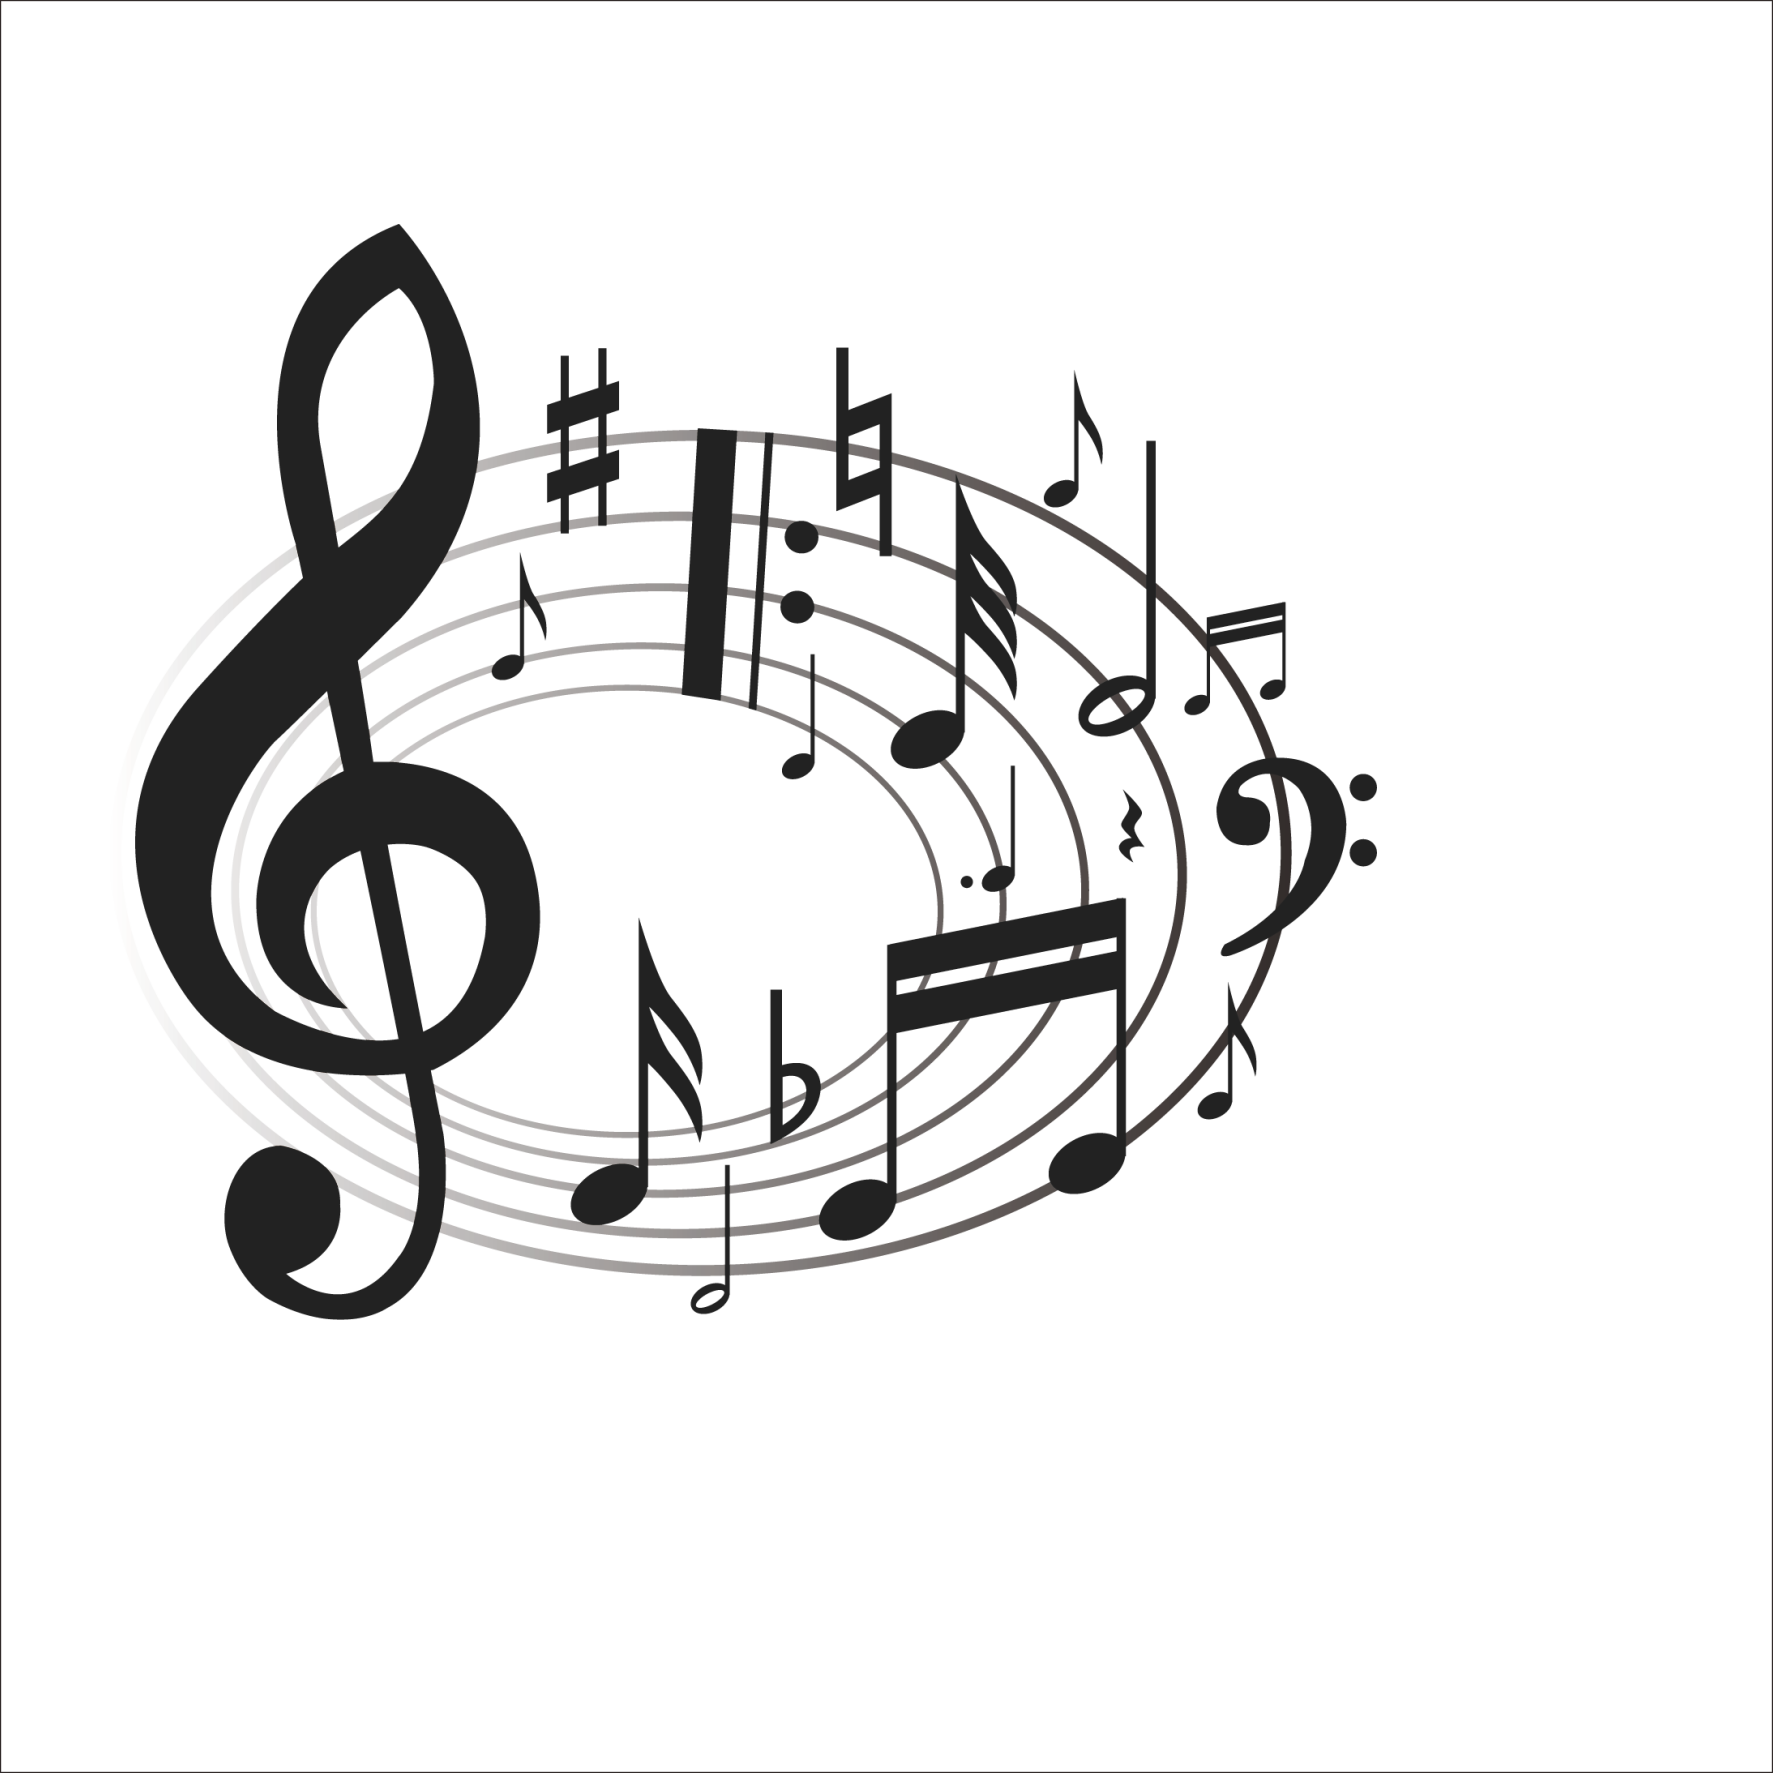 Musical clipart choral music, Musical choral music Transparent FREE.